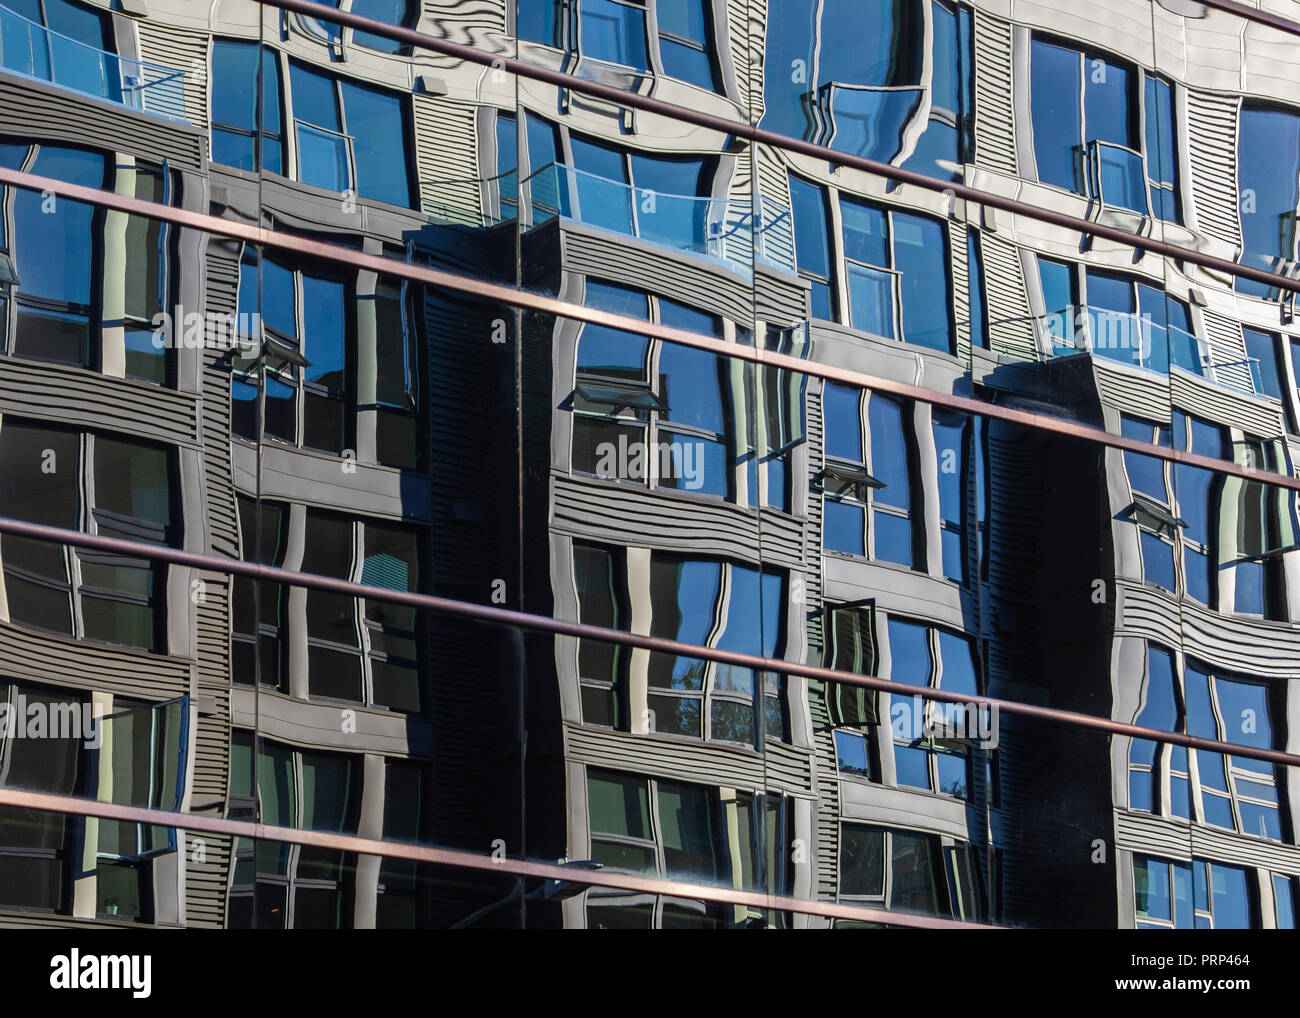 Warped reflection in downtown Seattle. - Stock Image